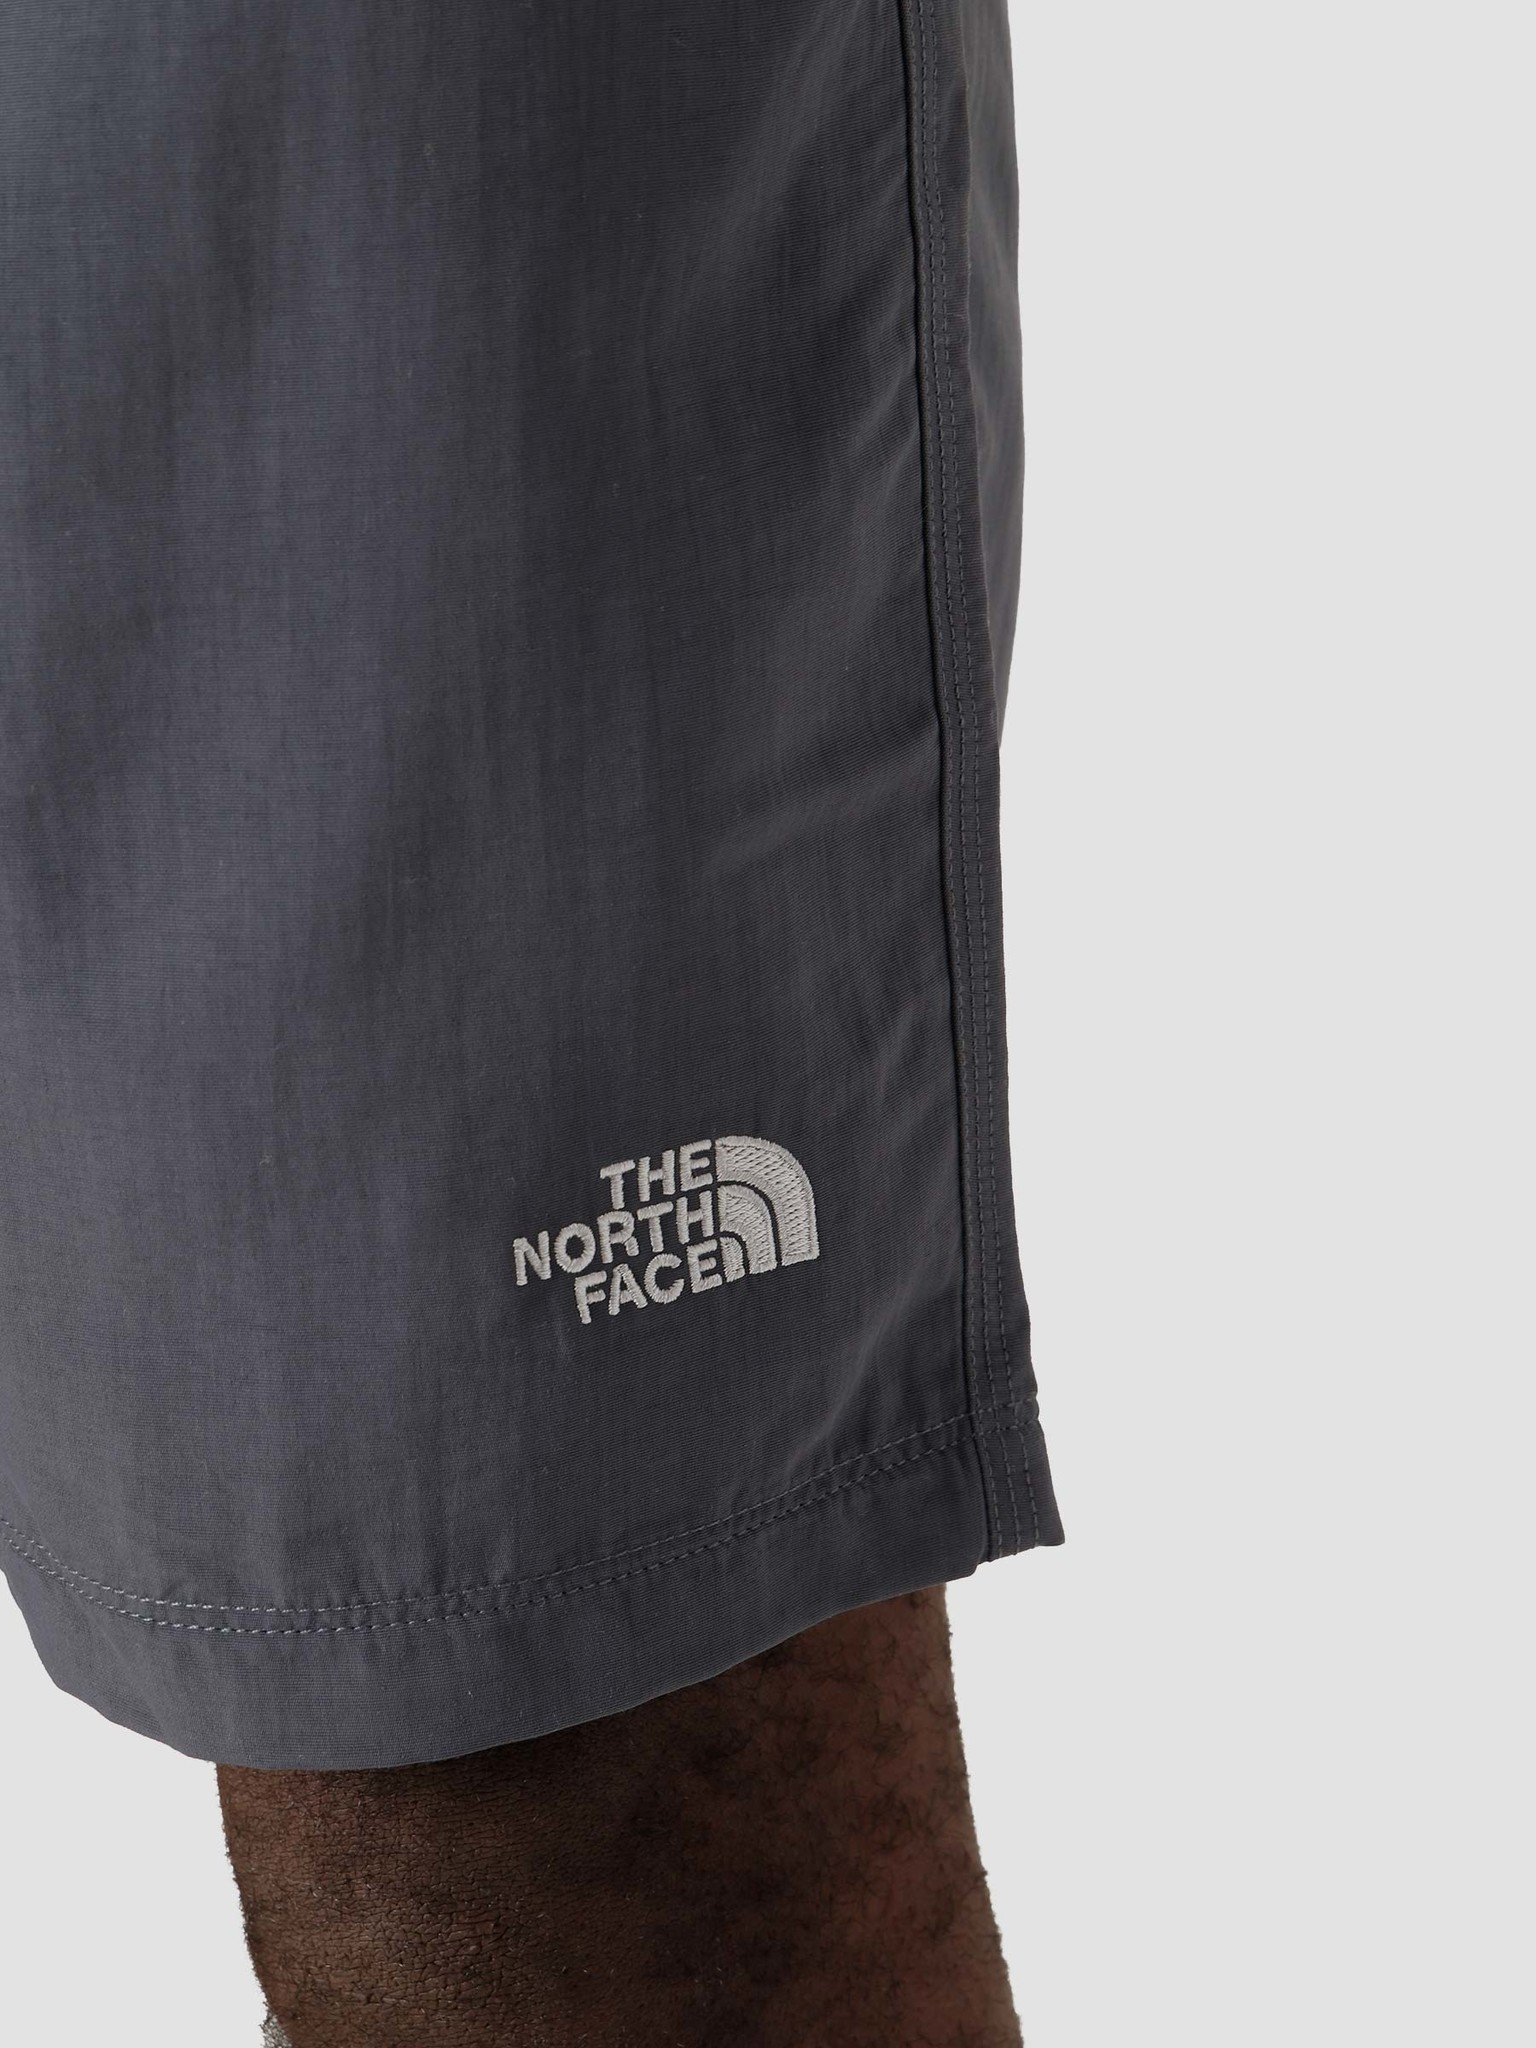 The North Face The North Face Class V Water Short Vanadis Grey NF00CMA1174